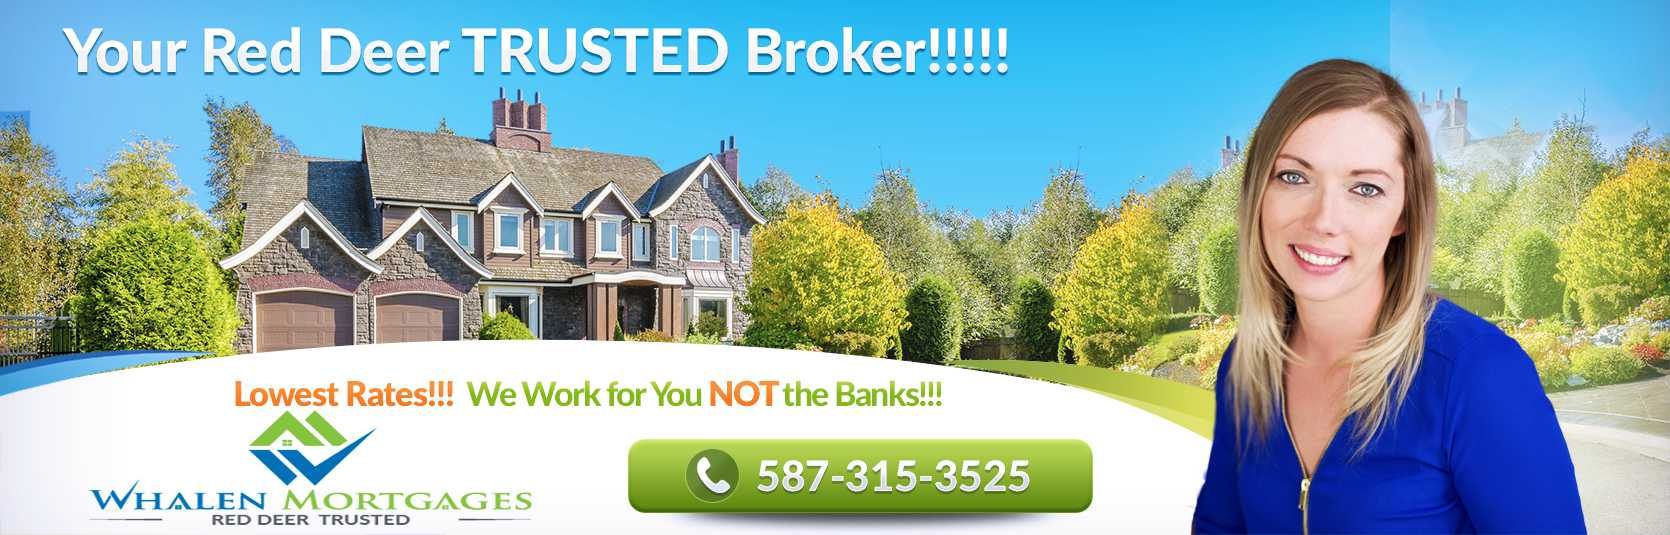 Red Deer Mortgage Broker : Red Deer Mortgage